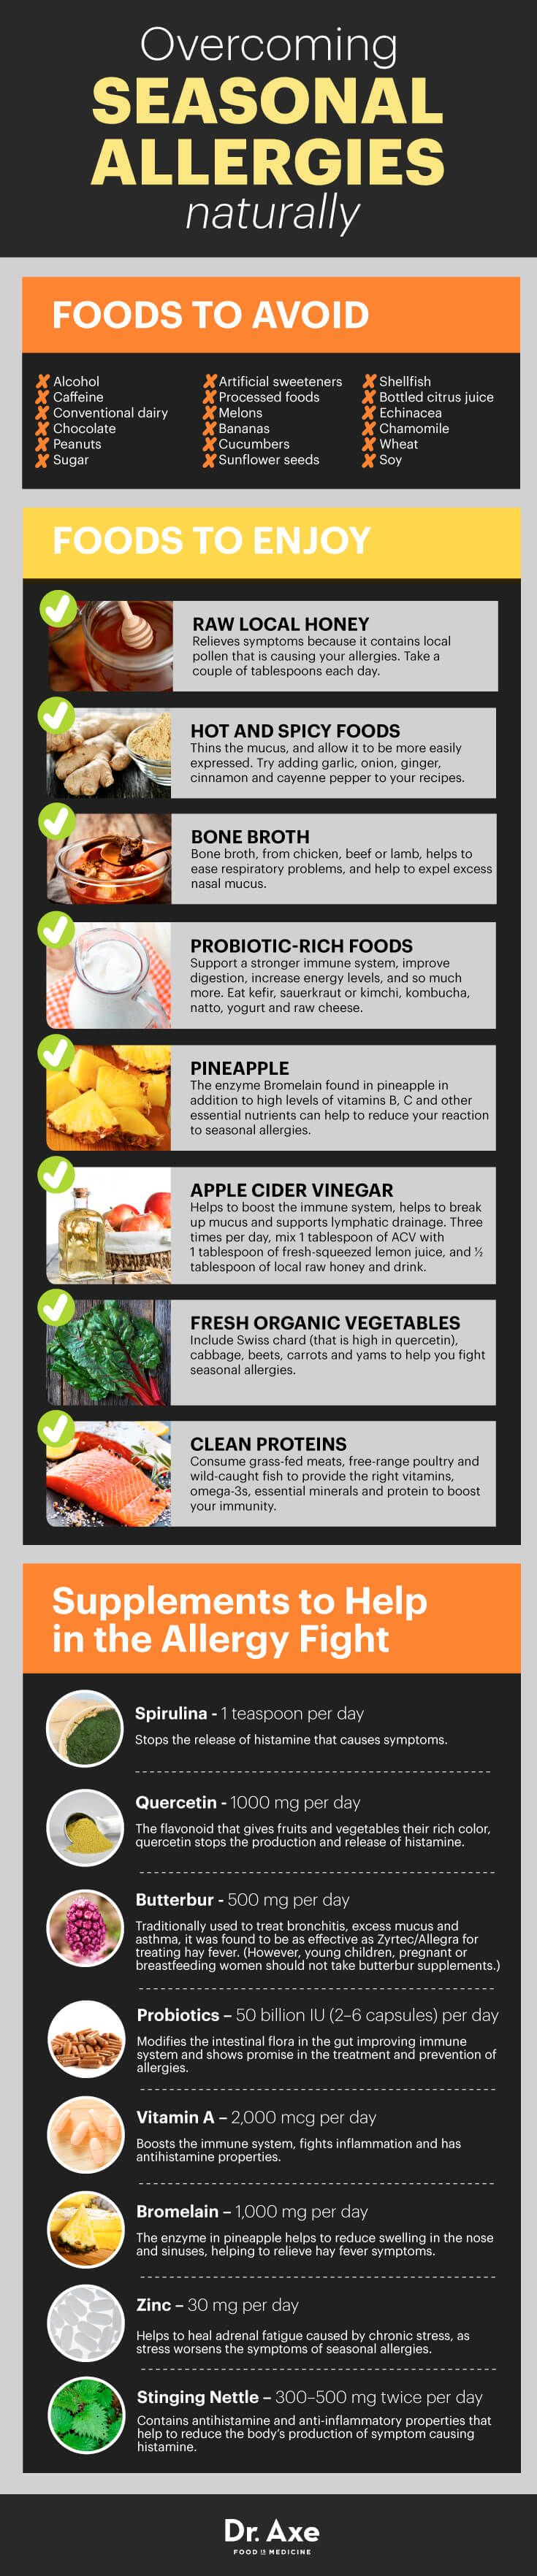 Natural remedies cures for seasonal allergies infographic chart